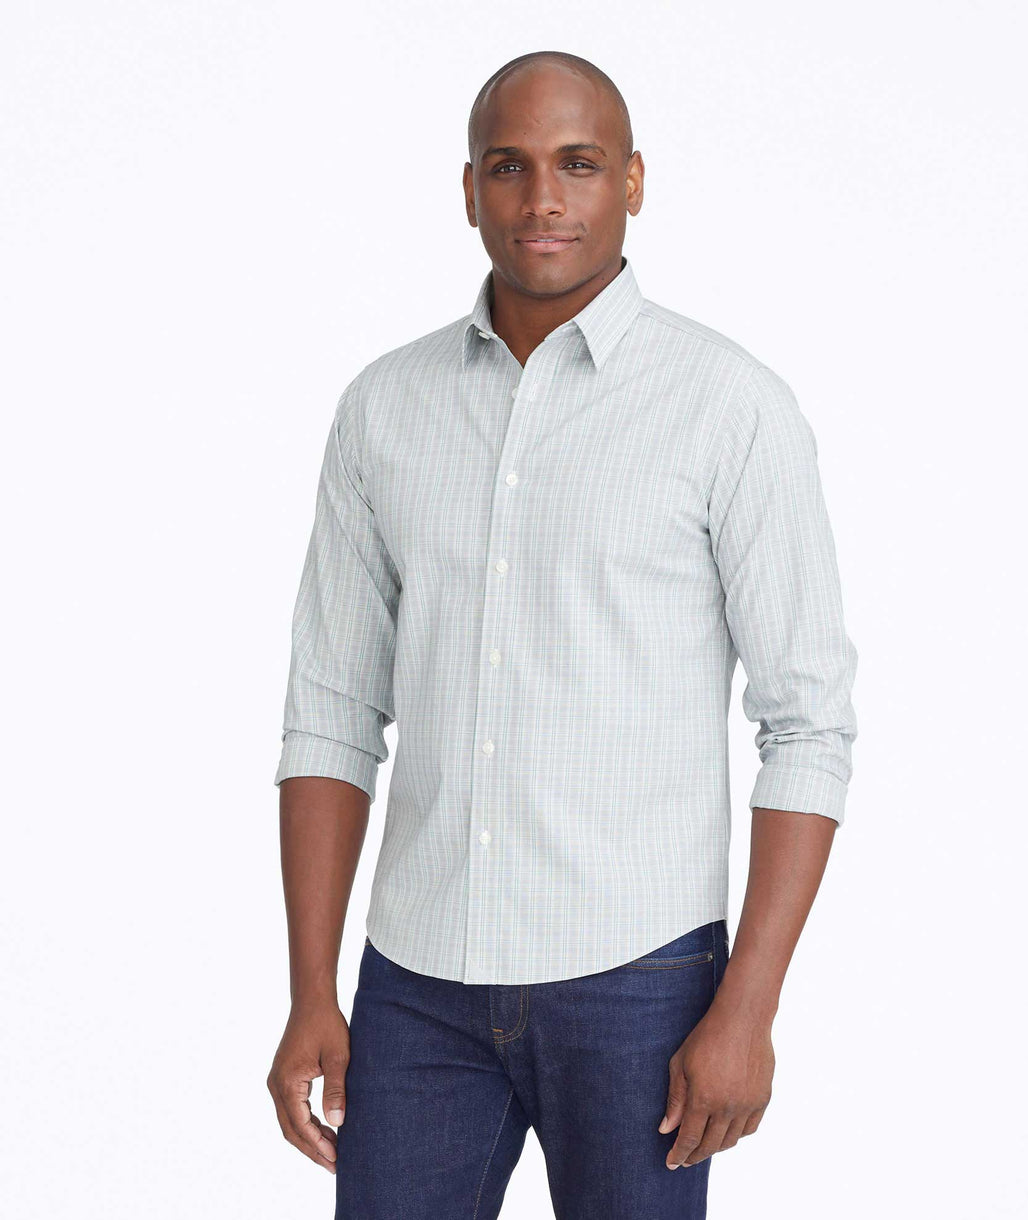 Model wearing a Green Wrinkle-Free Calera Shirt